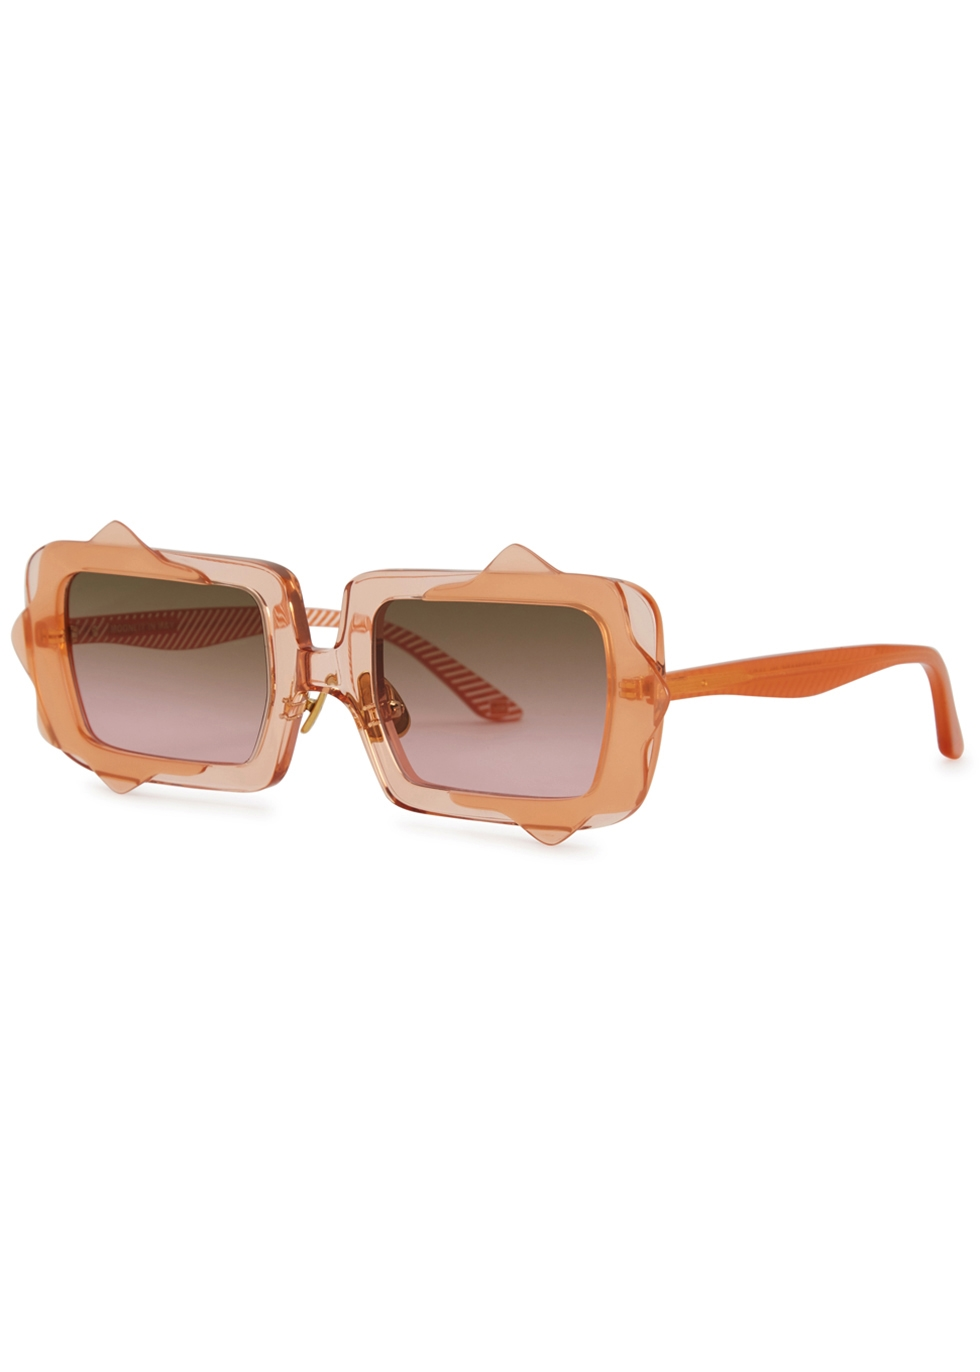 MOY ATELIER Moonlit In May Square-Frame Sunglasses in Pink